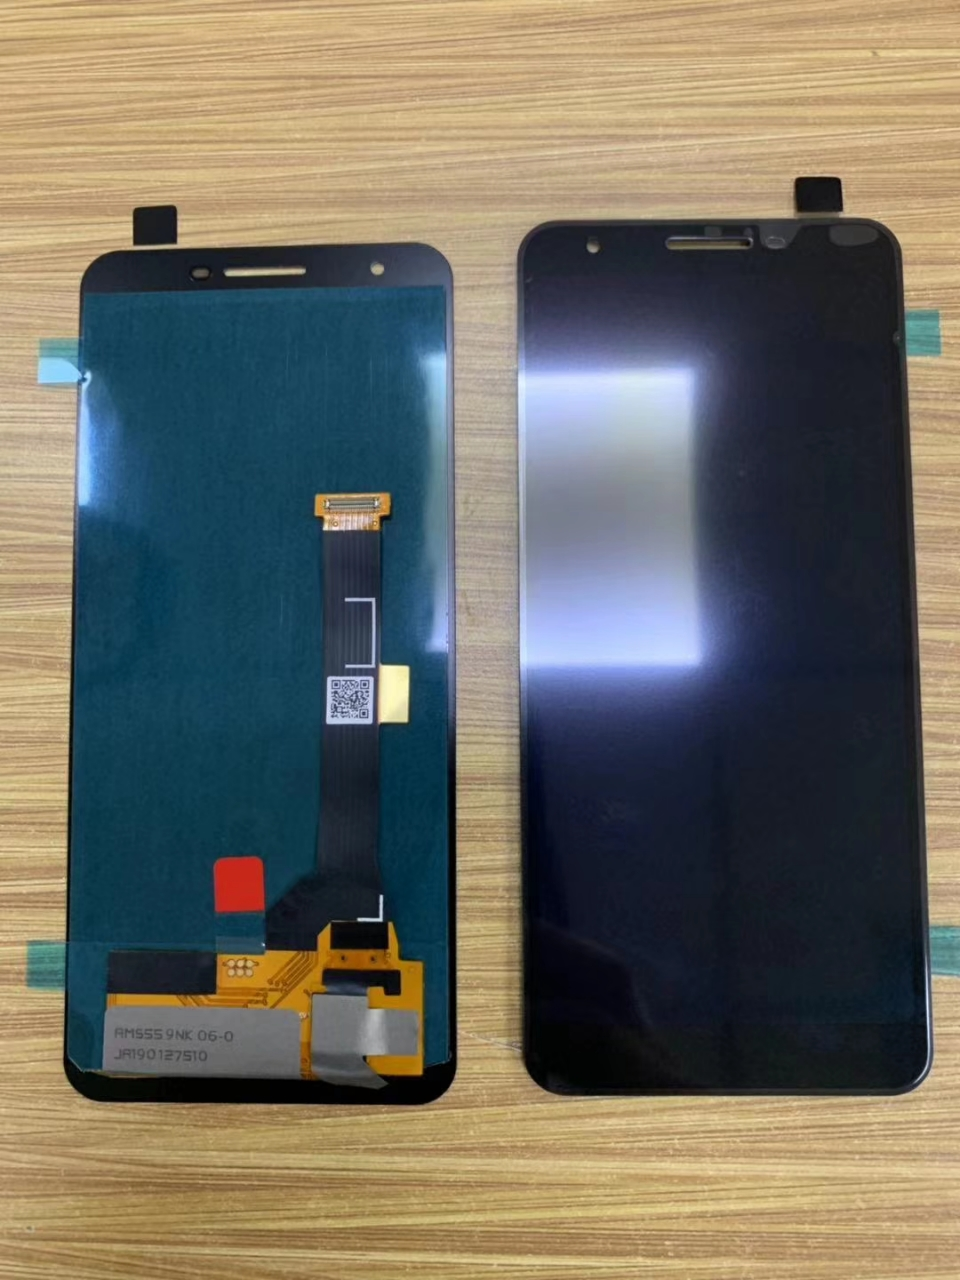 AMOLED <font><b>Screen</b></font> For <font><b>Google</b></font> <font><b>Pixel</b></font> 3A <font><b>LCD</b></font> Display Touch <font><b>Screen</b></font> Digitizer Assembly G020A G020E G020B G020C G020G G020F <font><b>Pixel</b></font> 3A <font><b>XL</b></font> image